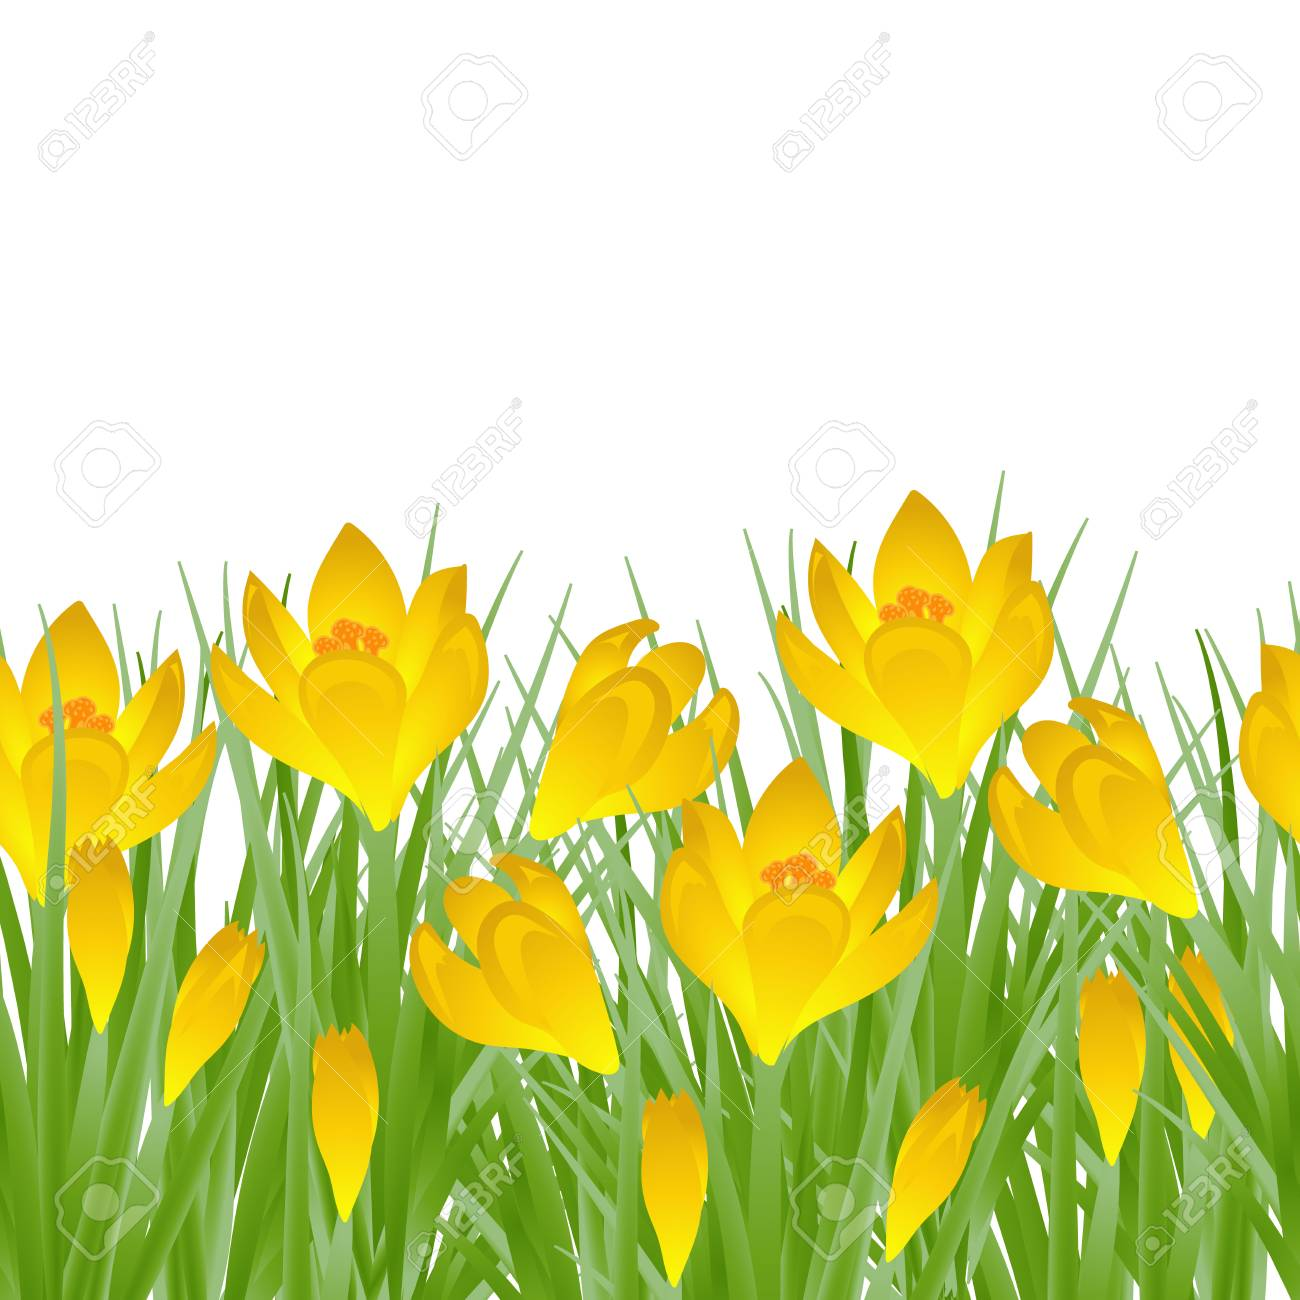 Early Spring Yellow Flower Crocus For Easter On White Background